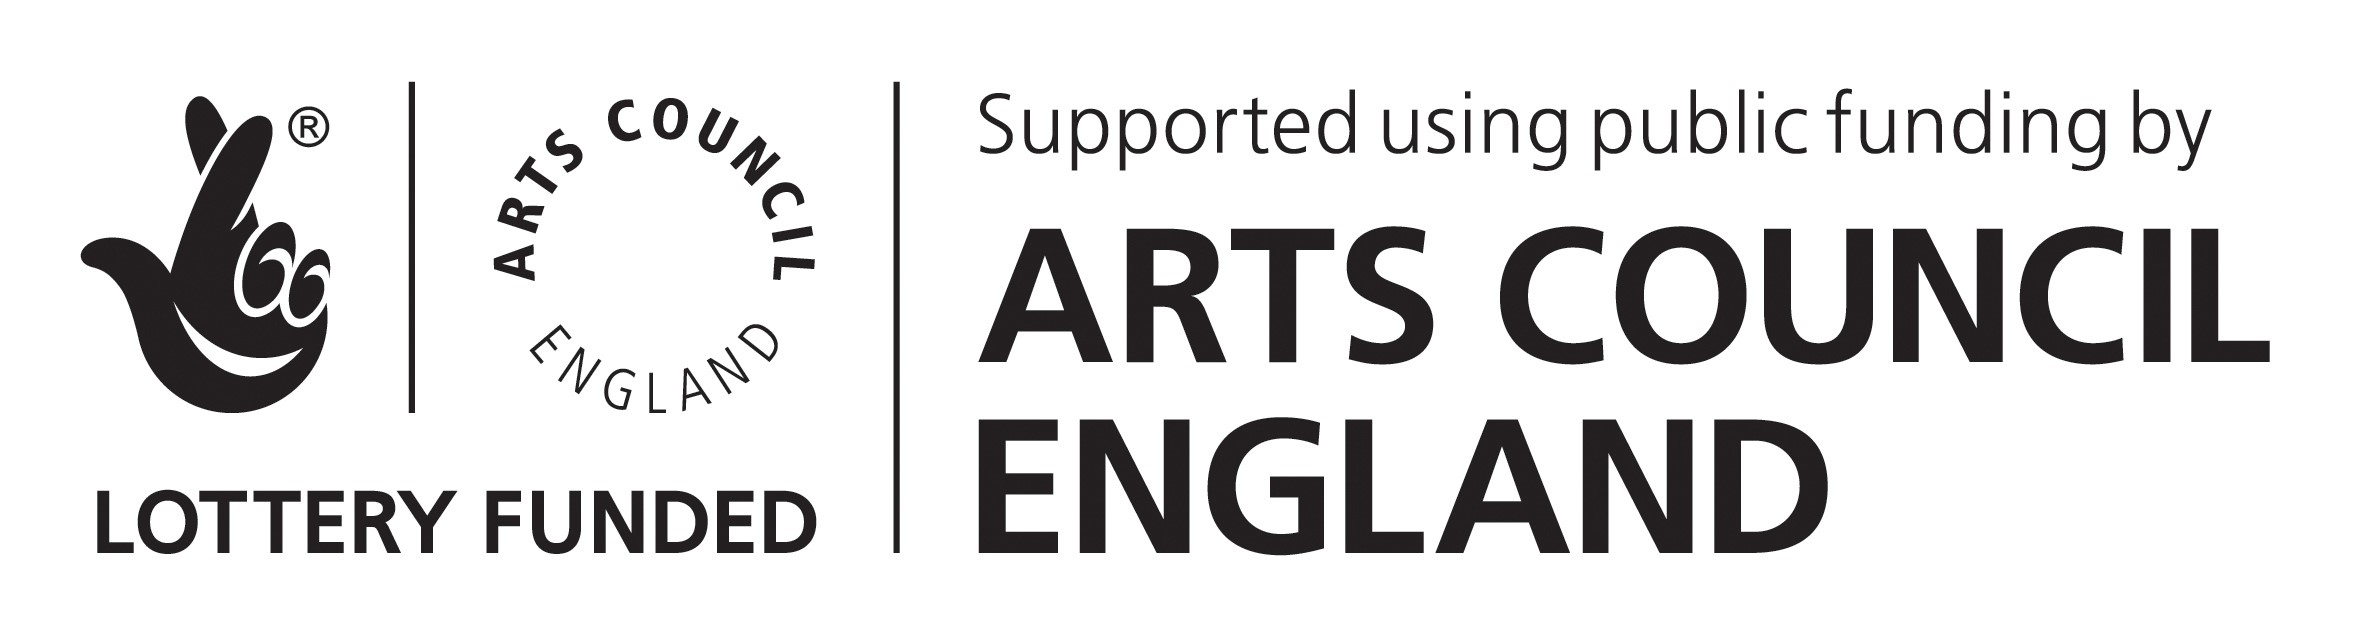 Arts Council Funded. Image Logo.